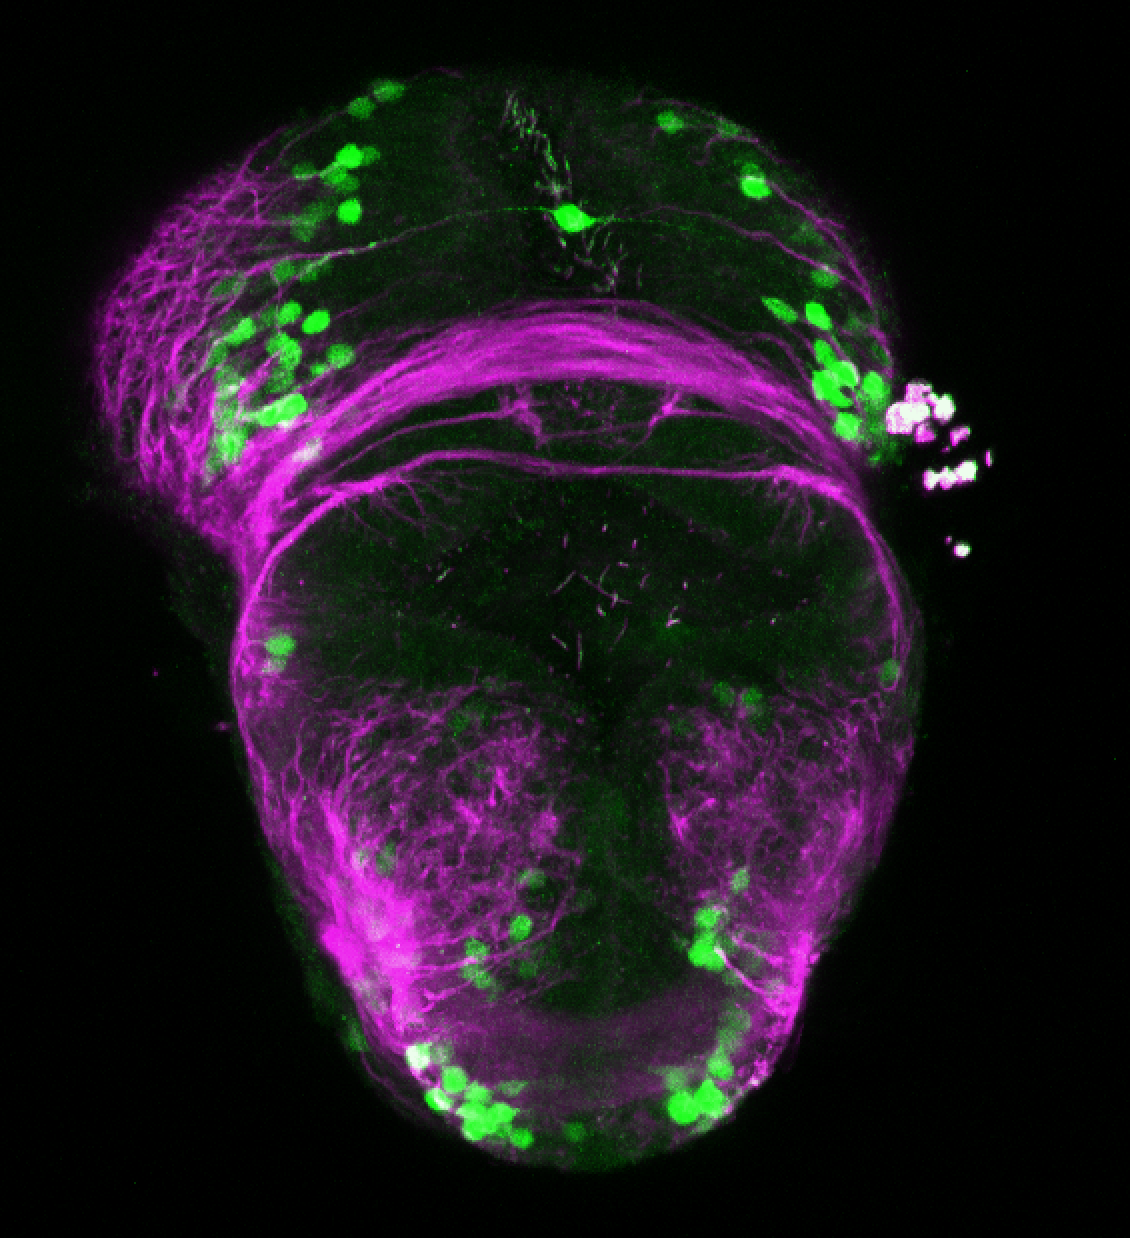 xeom:GFP 2dpf frontal with tubulin (magenta)